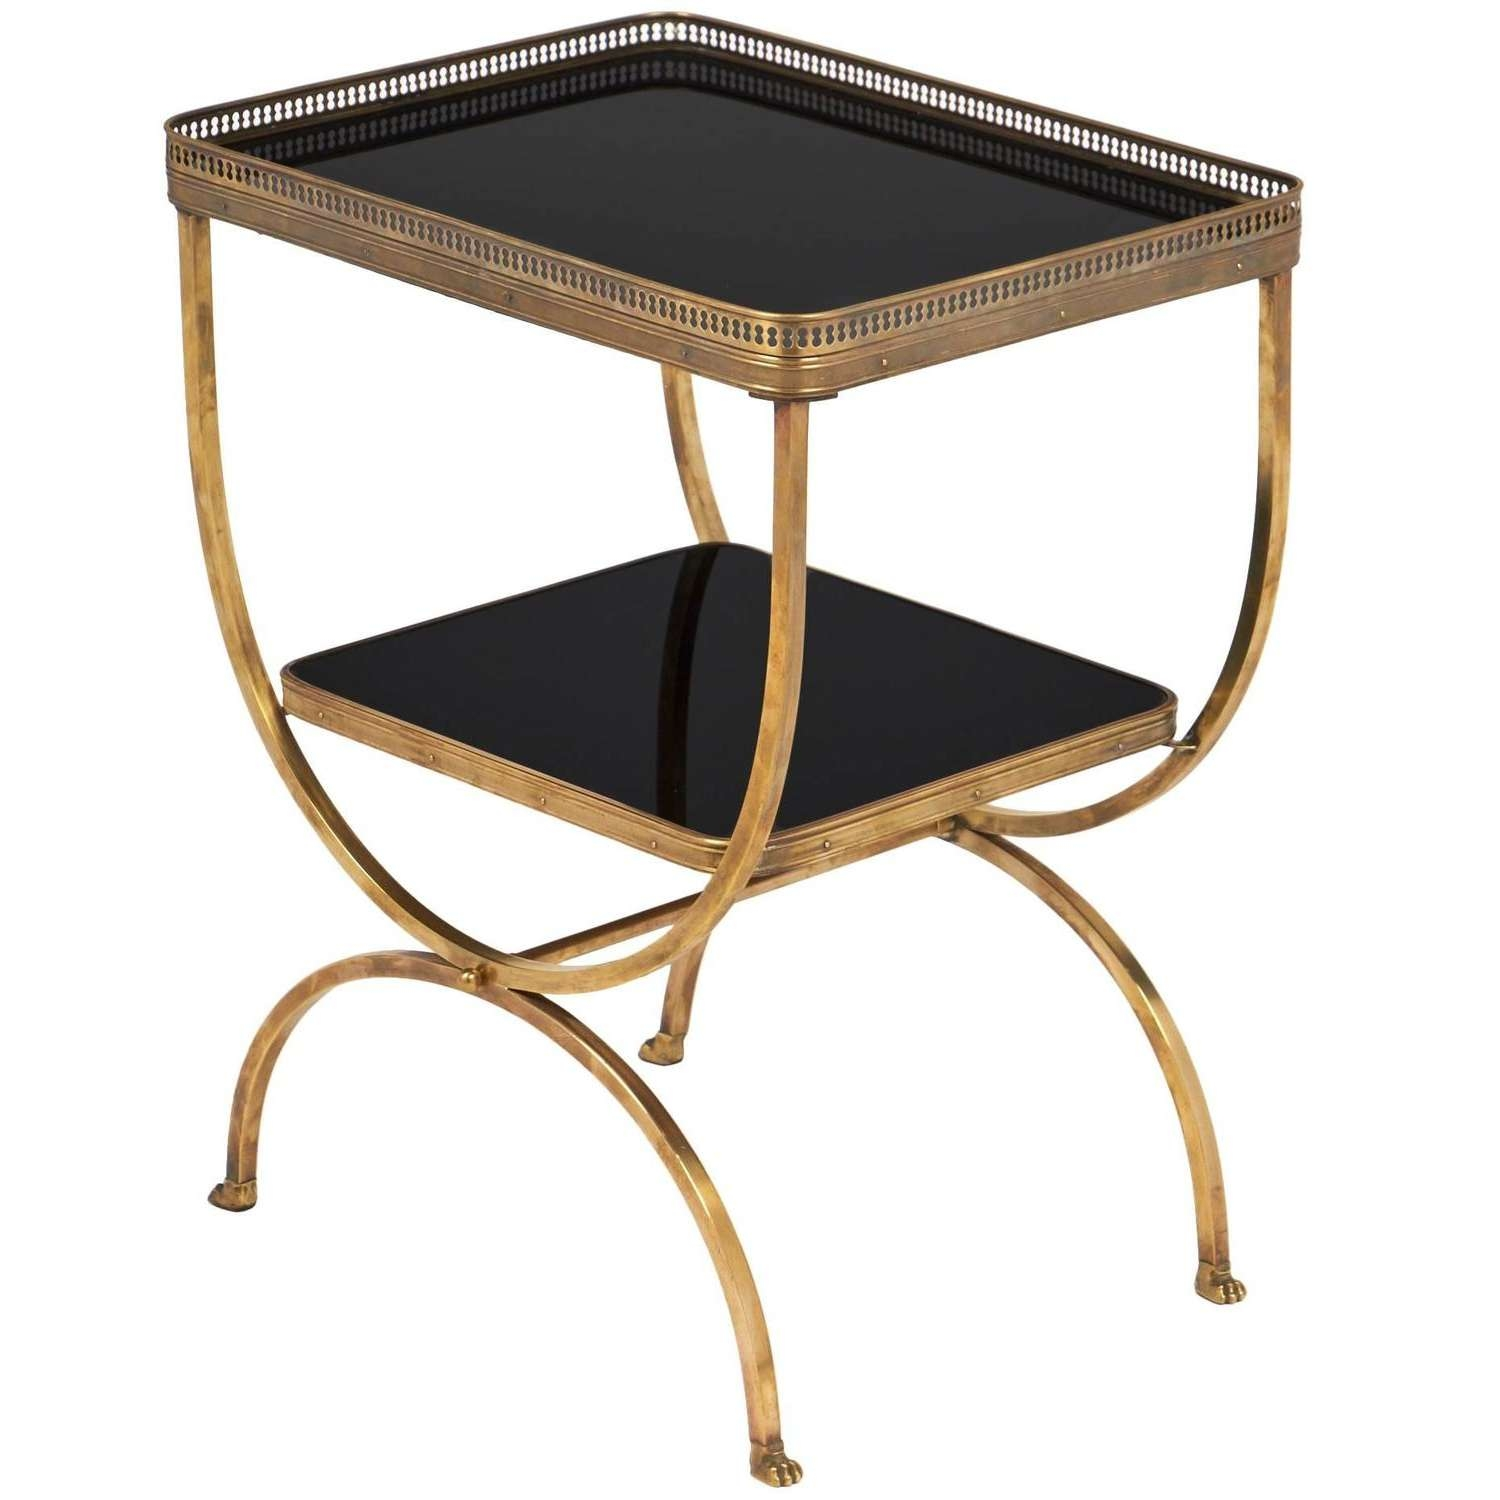 2018 Antique Brass Glass Coffee Tables In Coffee Table : Magnificent Round Wood Coffee Table Reclaimed Wood (View 18 of 20)